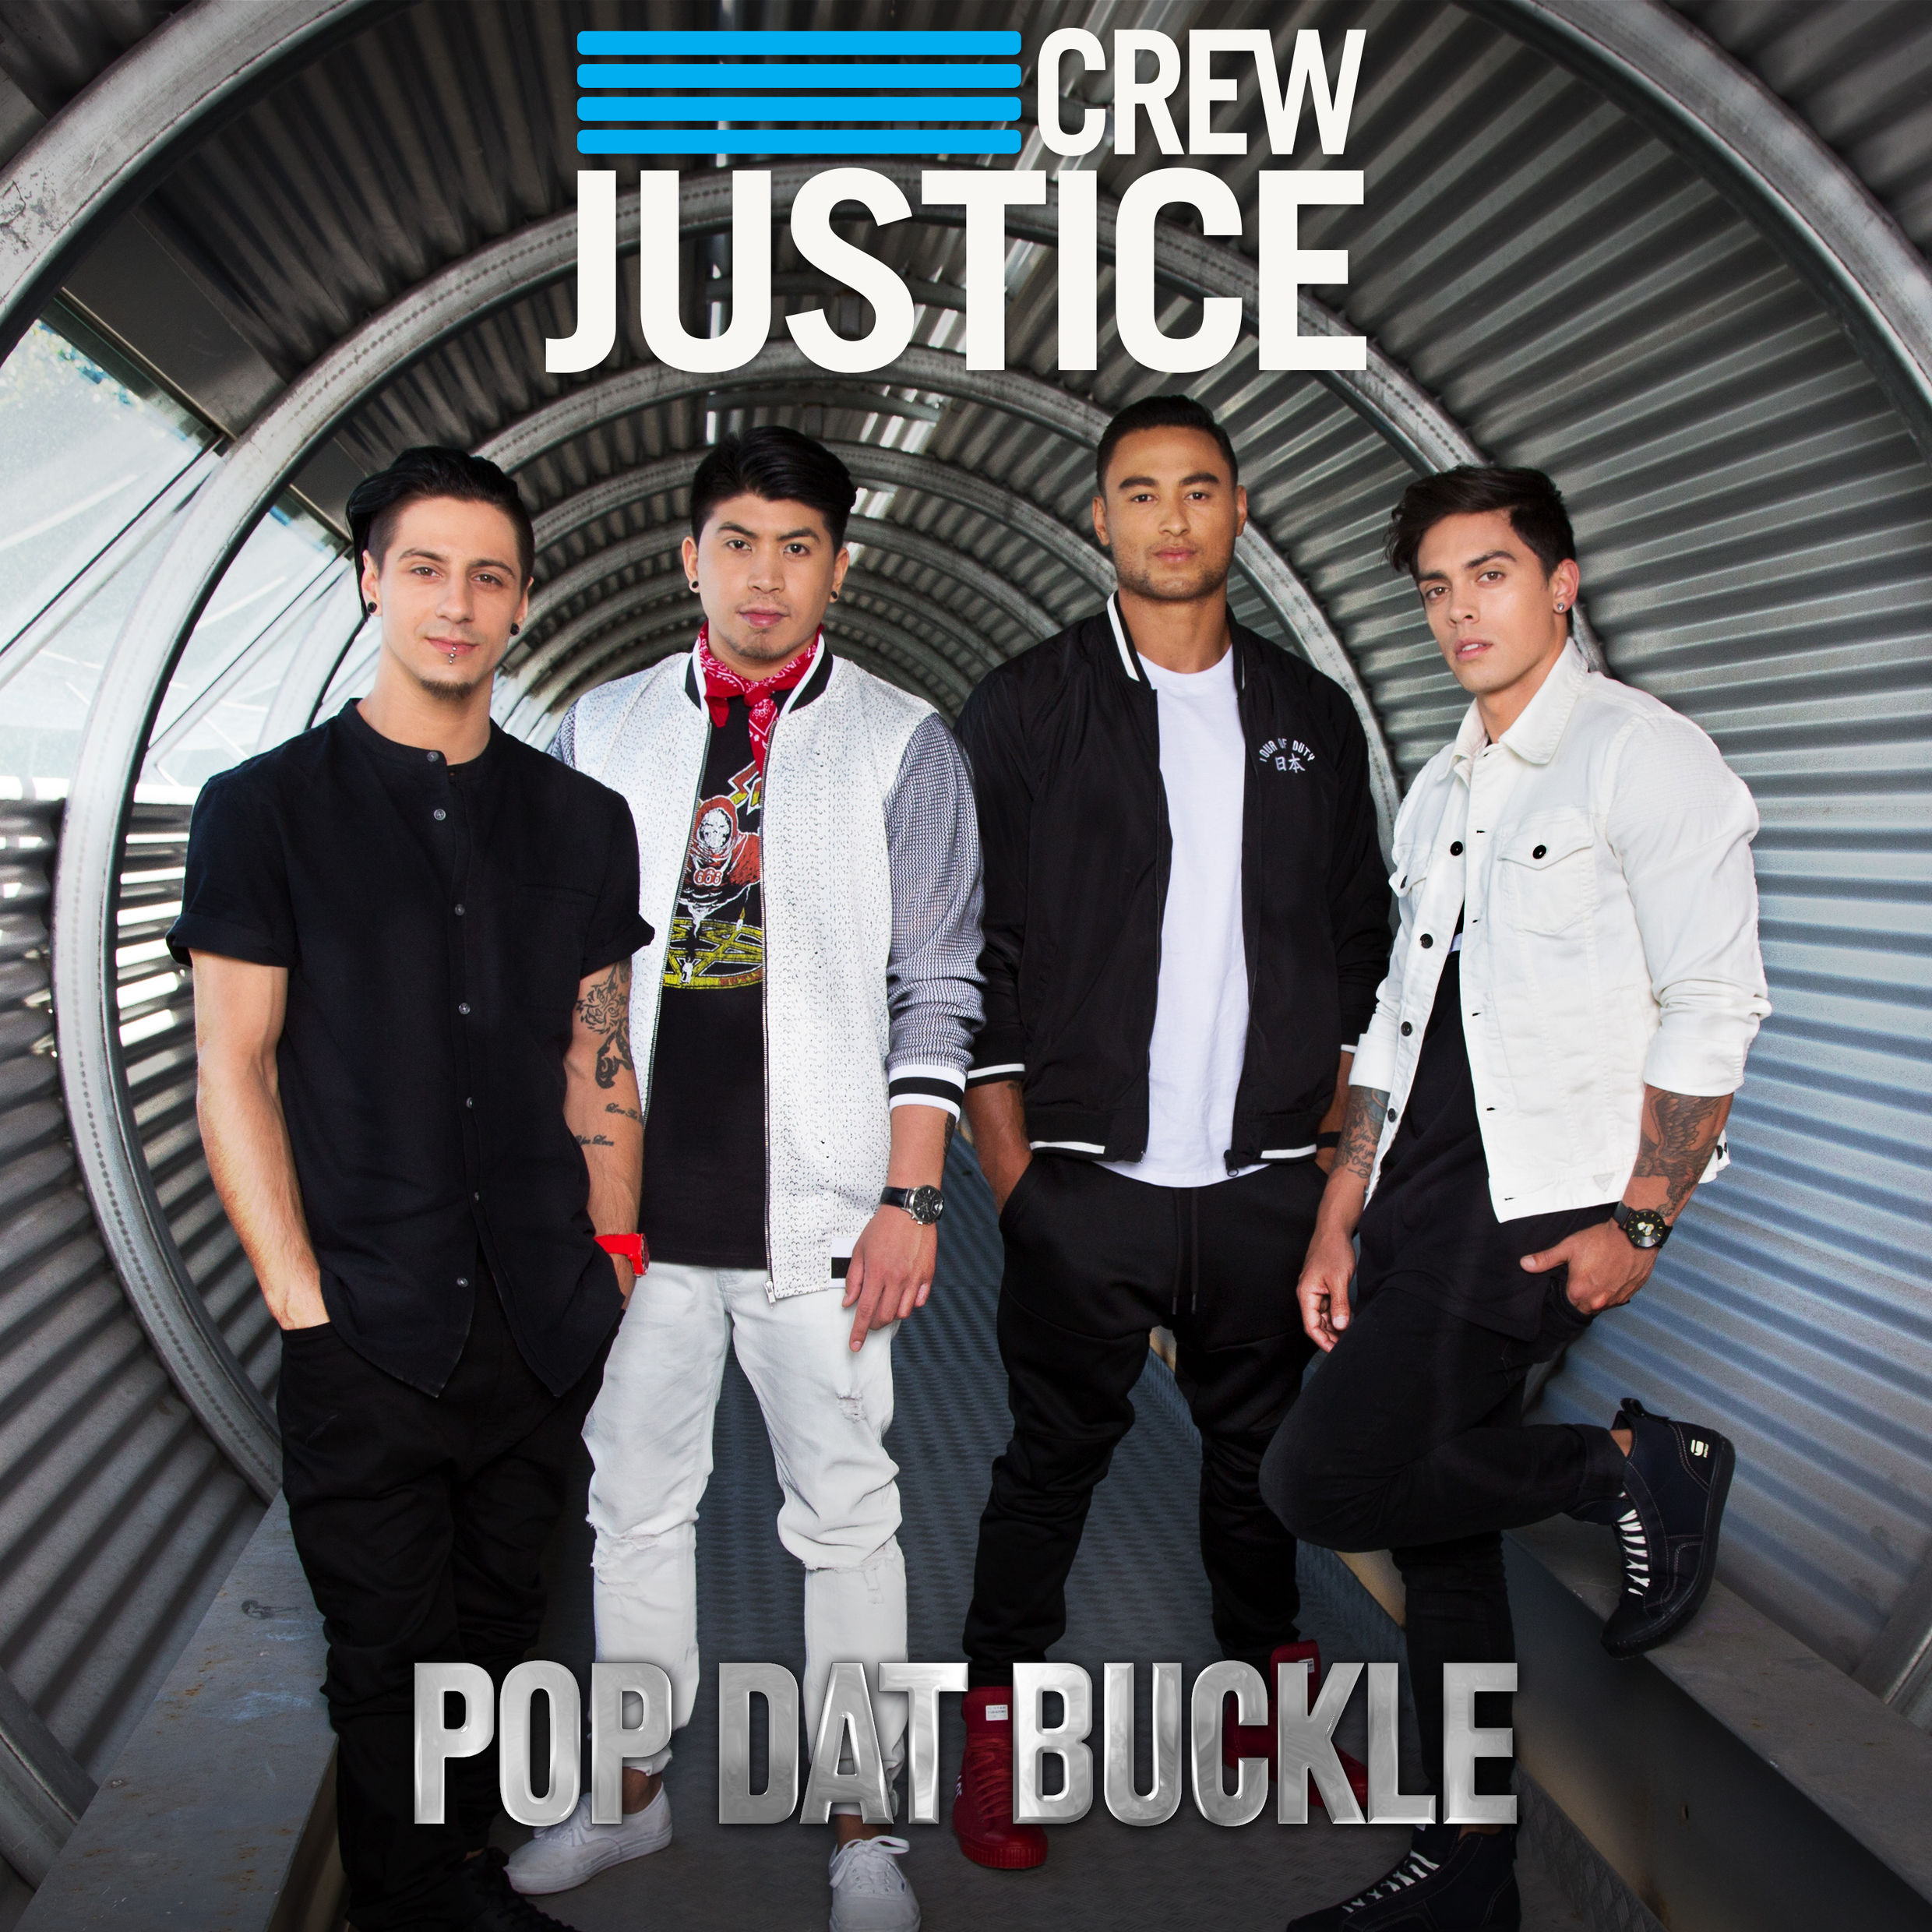 Justice Crew - Pop Dat Buckle